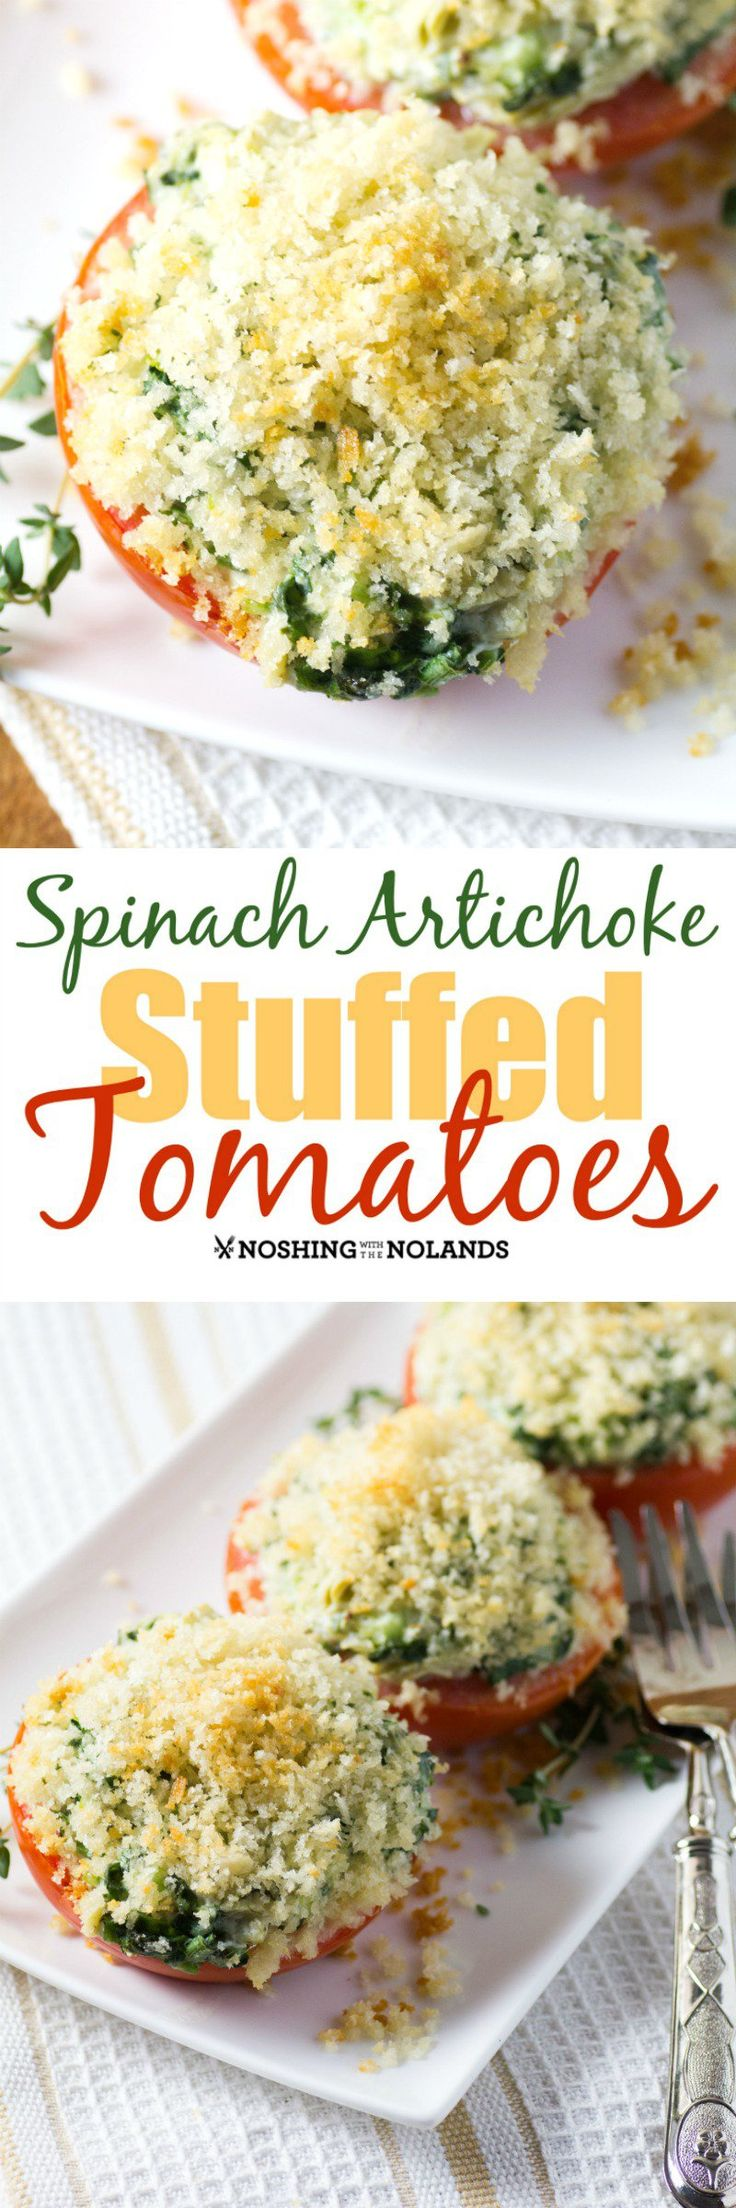 Spinach, Artichoke Stuffed Tomatoes are a gorgeous Cajun-Creole side dish that goes with any entree. They are perfect for summer entertaining enjoying big beautiful heirloom tomatoes.